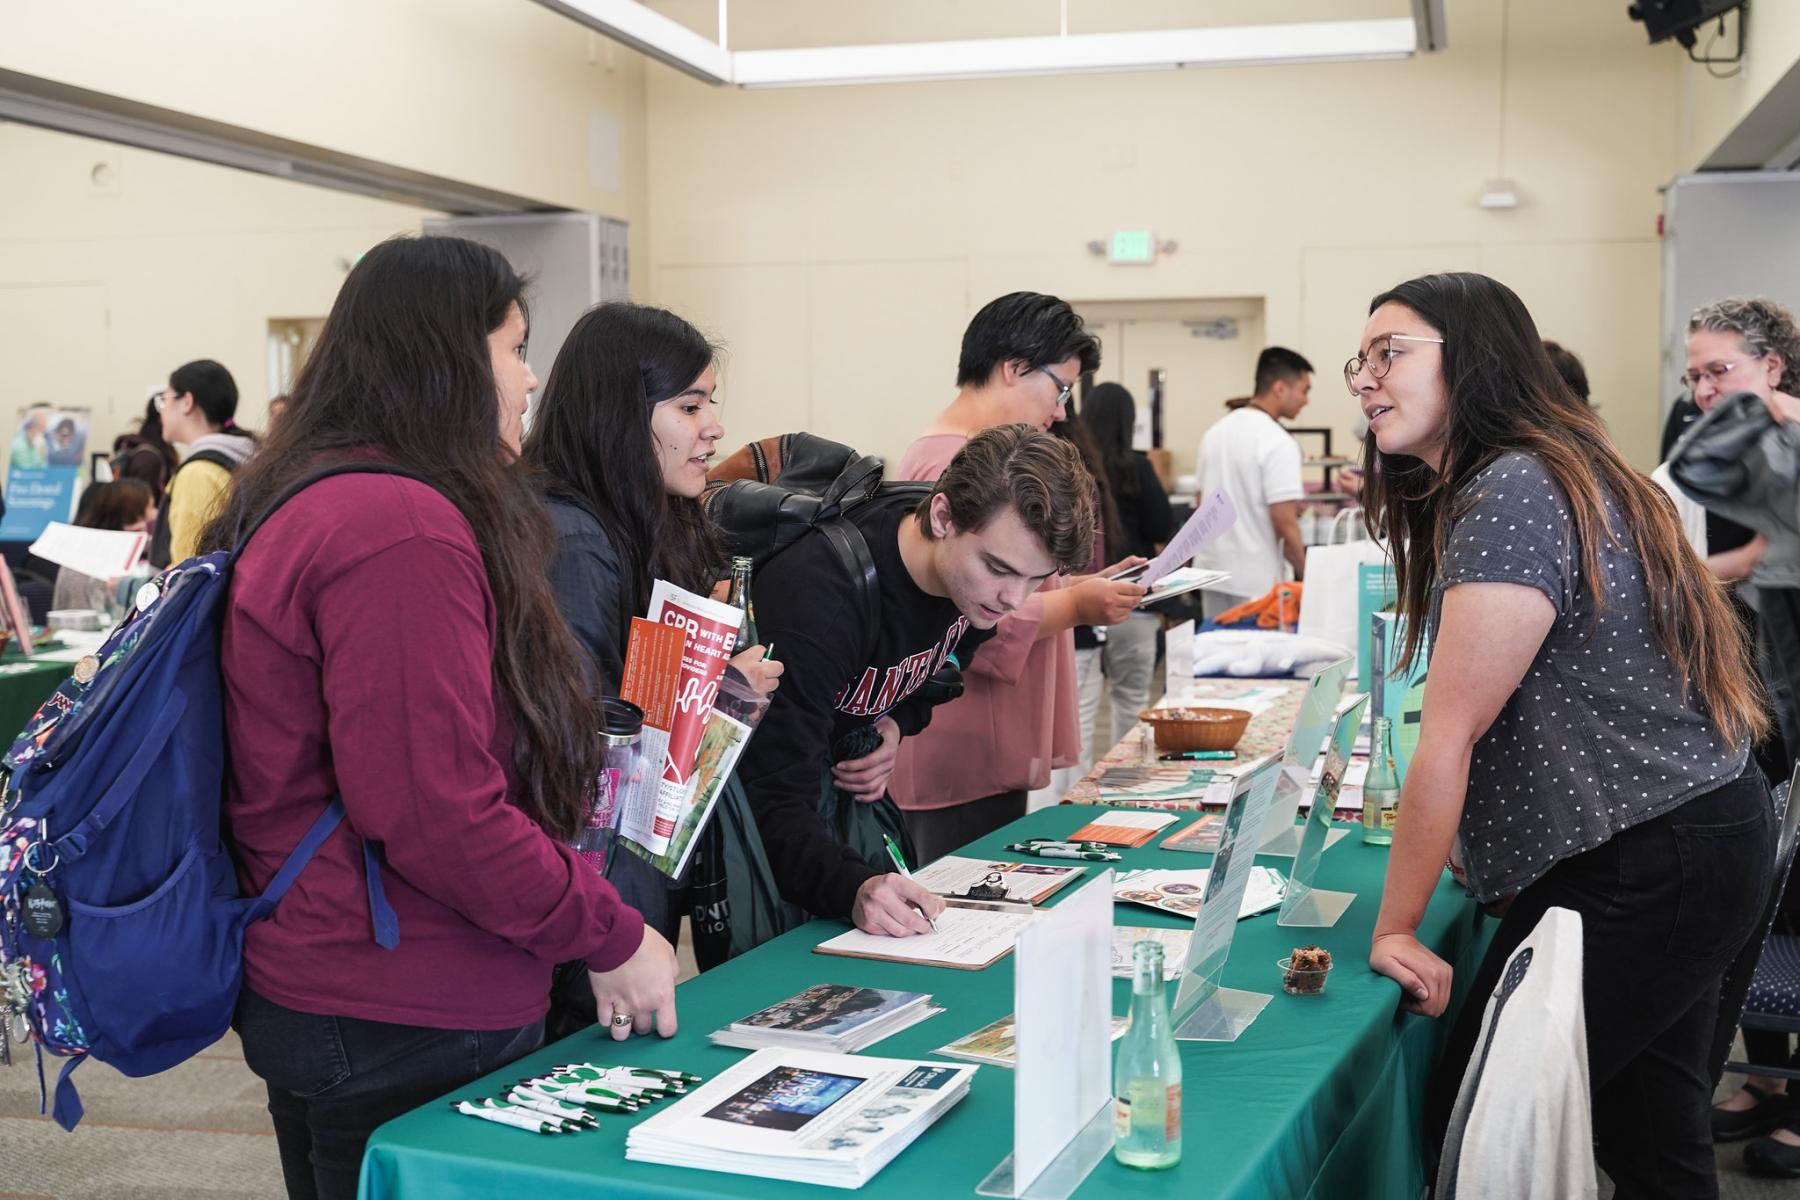 Students Networking at Health Fair for Employment Opportunities